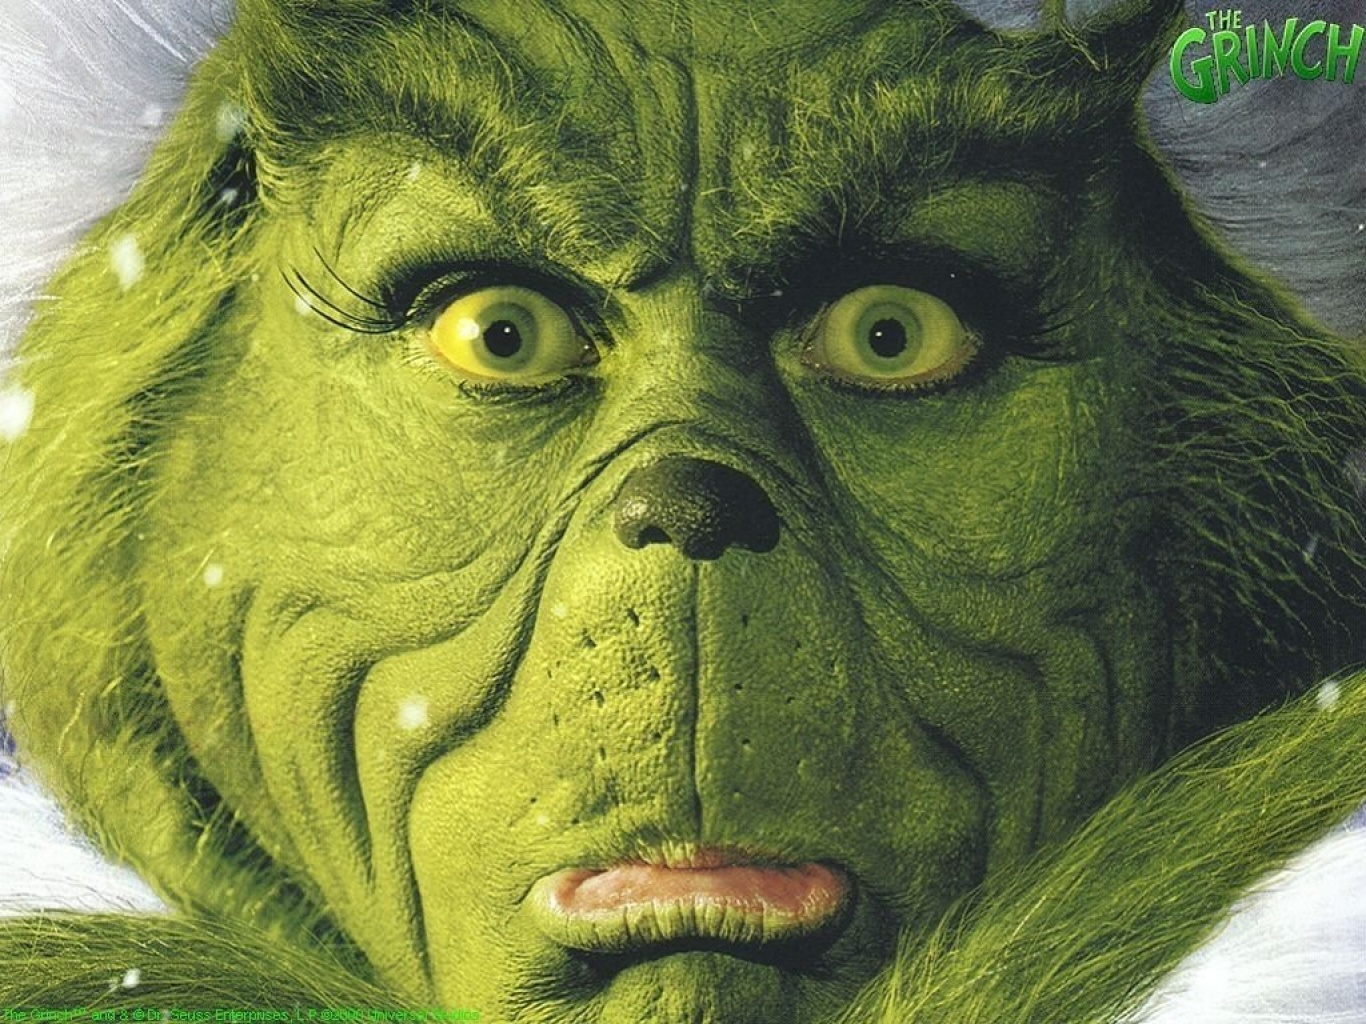 Manga-El-Grinch-Fotos-Para-Bajar-Cute-1920%C3%971080-Resolution-HD-Photos-1920%C3%971080-Resolution-wallpaper-wp3807981